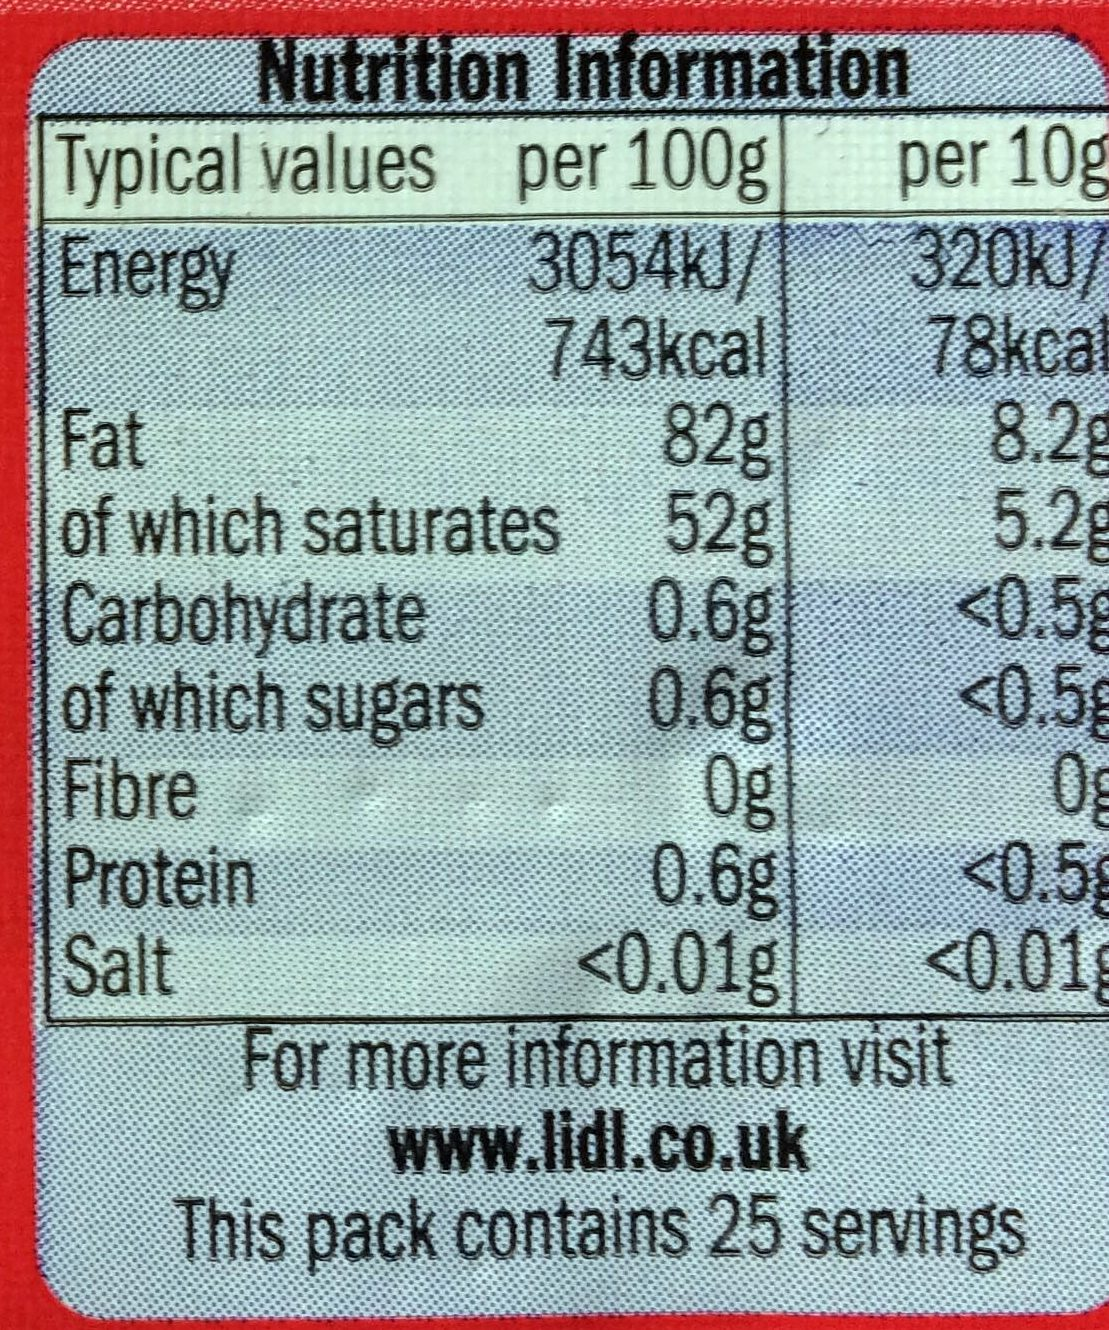 British butter - unsalted - Nutrition facts